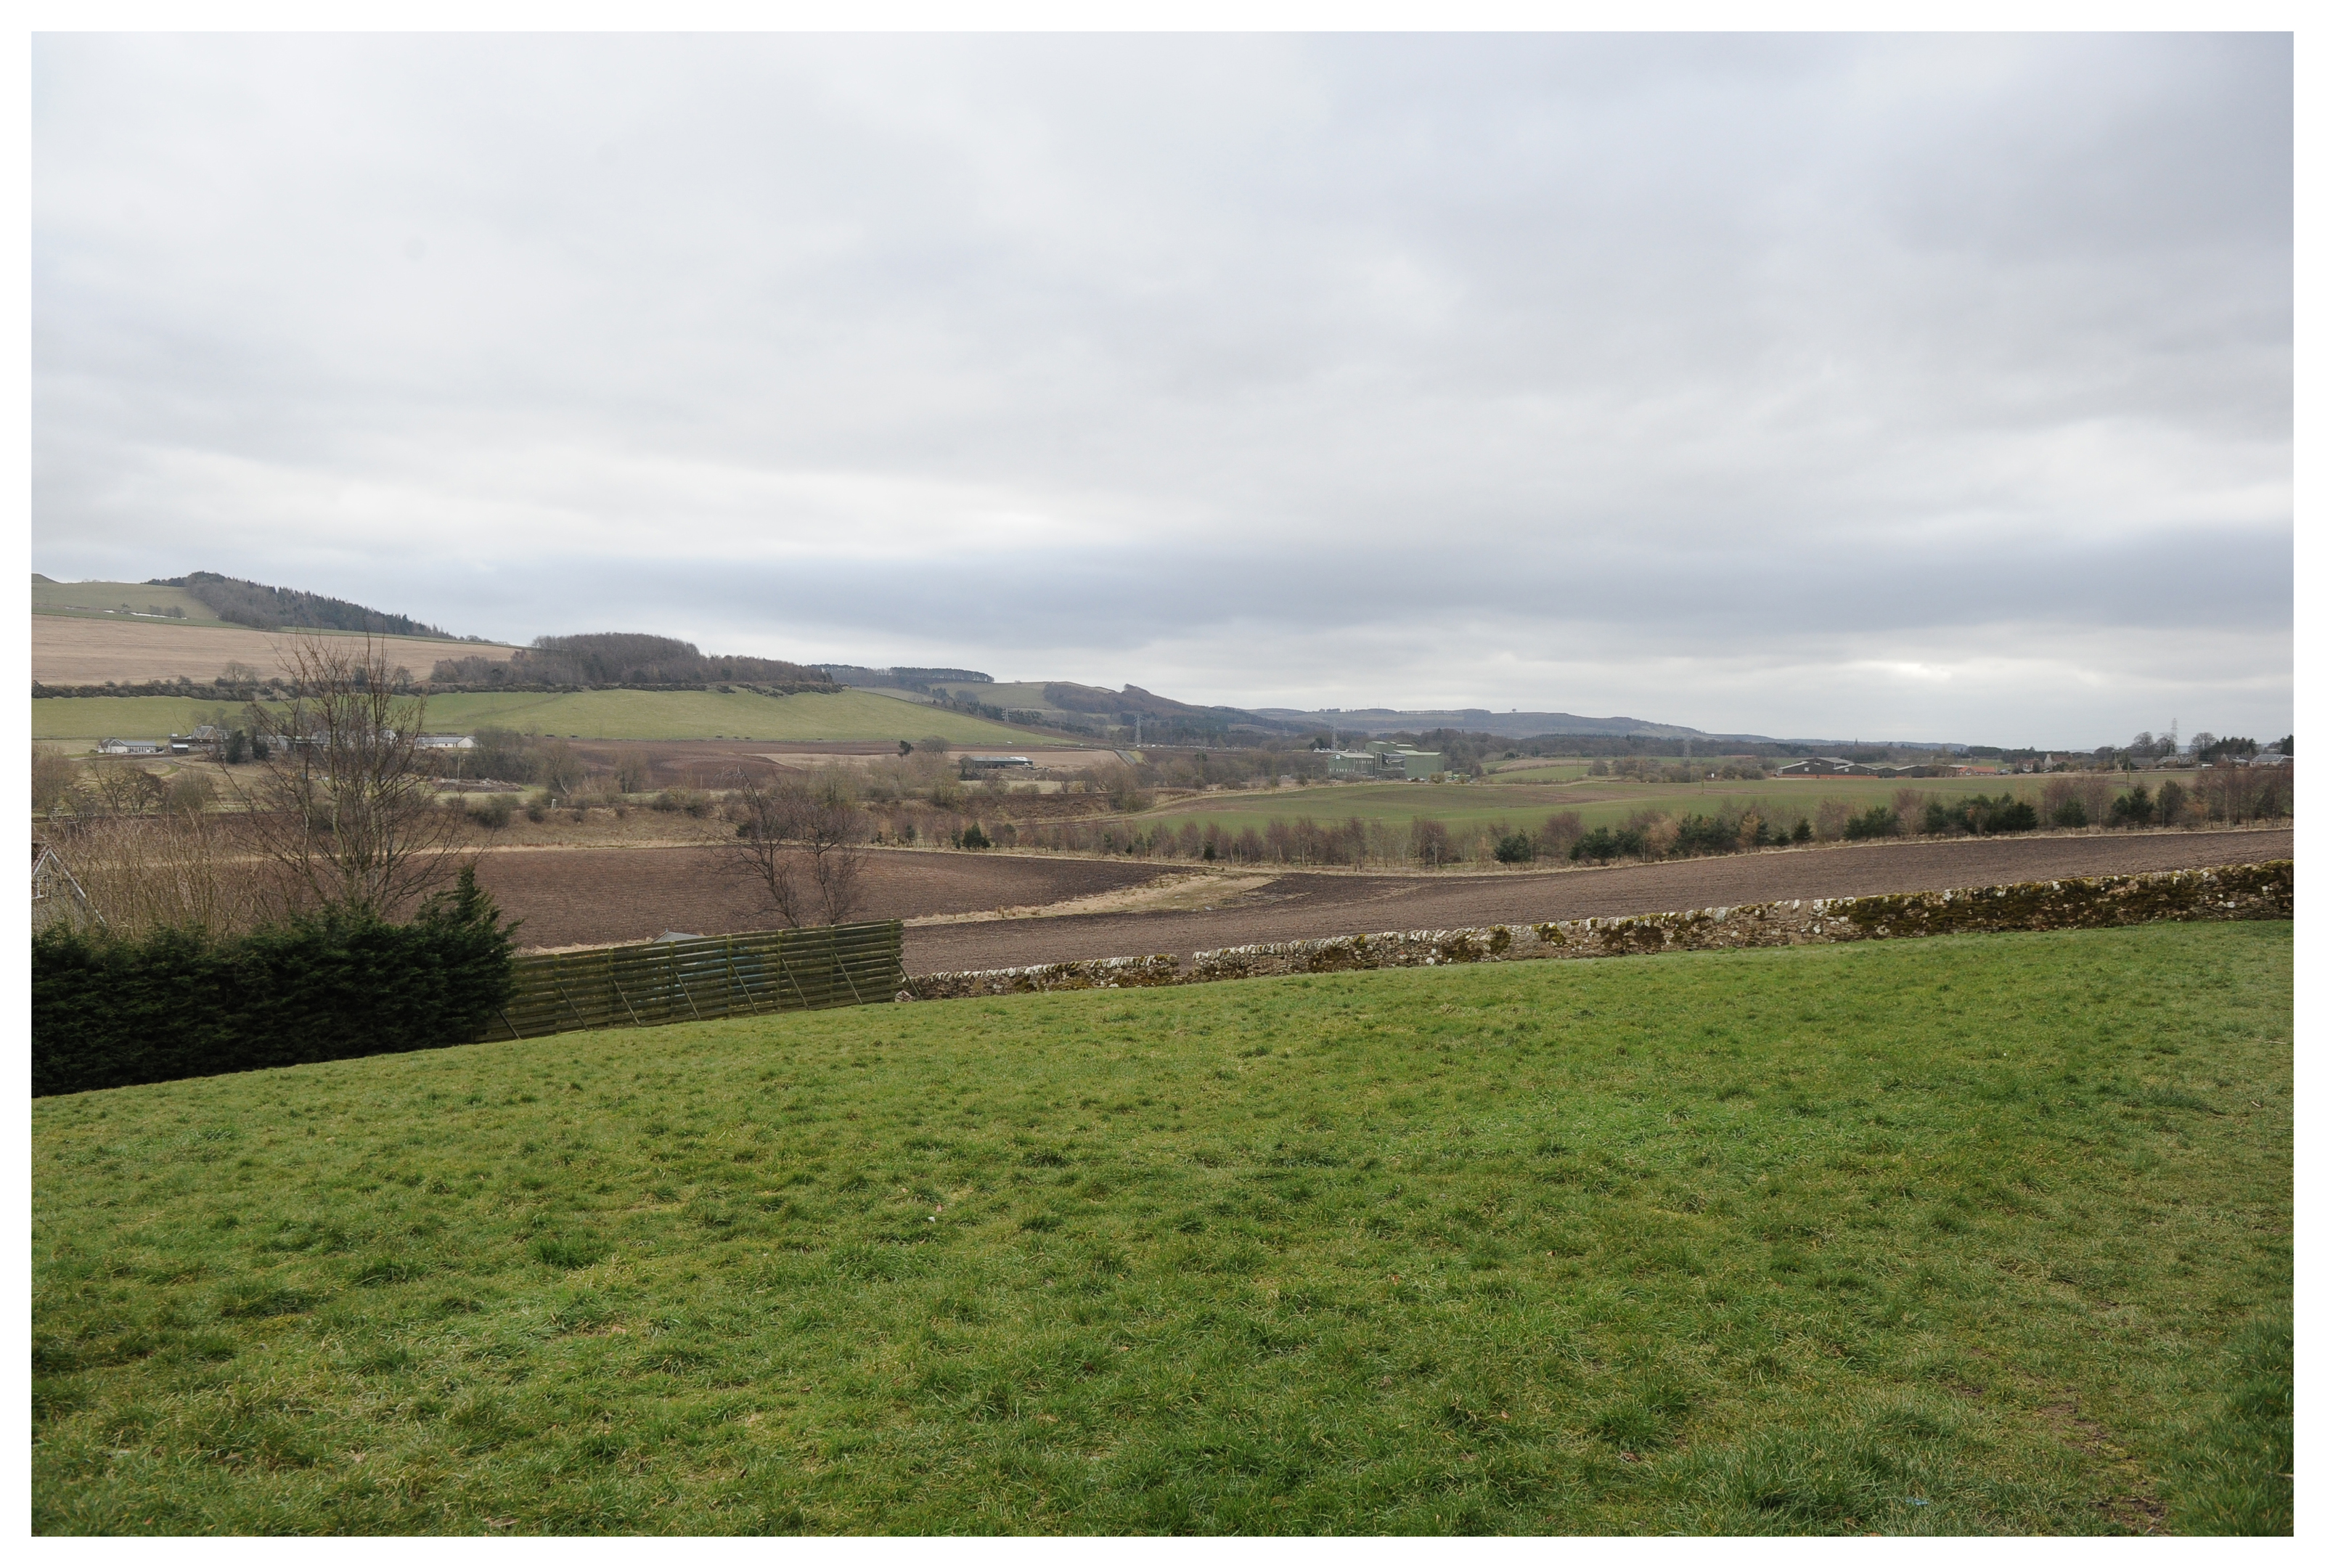 Land at Ferryfield, Cupar, south-east of Brighton Road, which has been earmarked for new housing development.